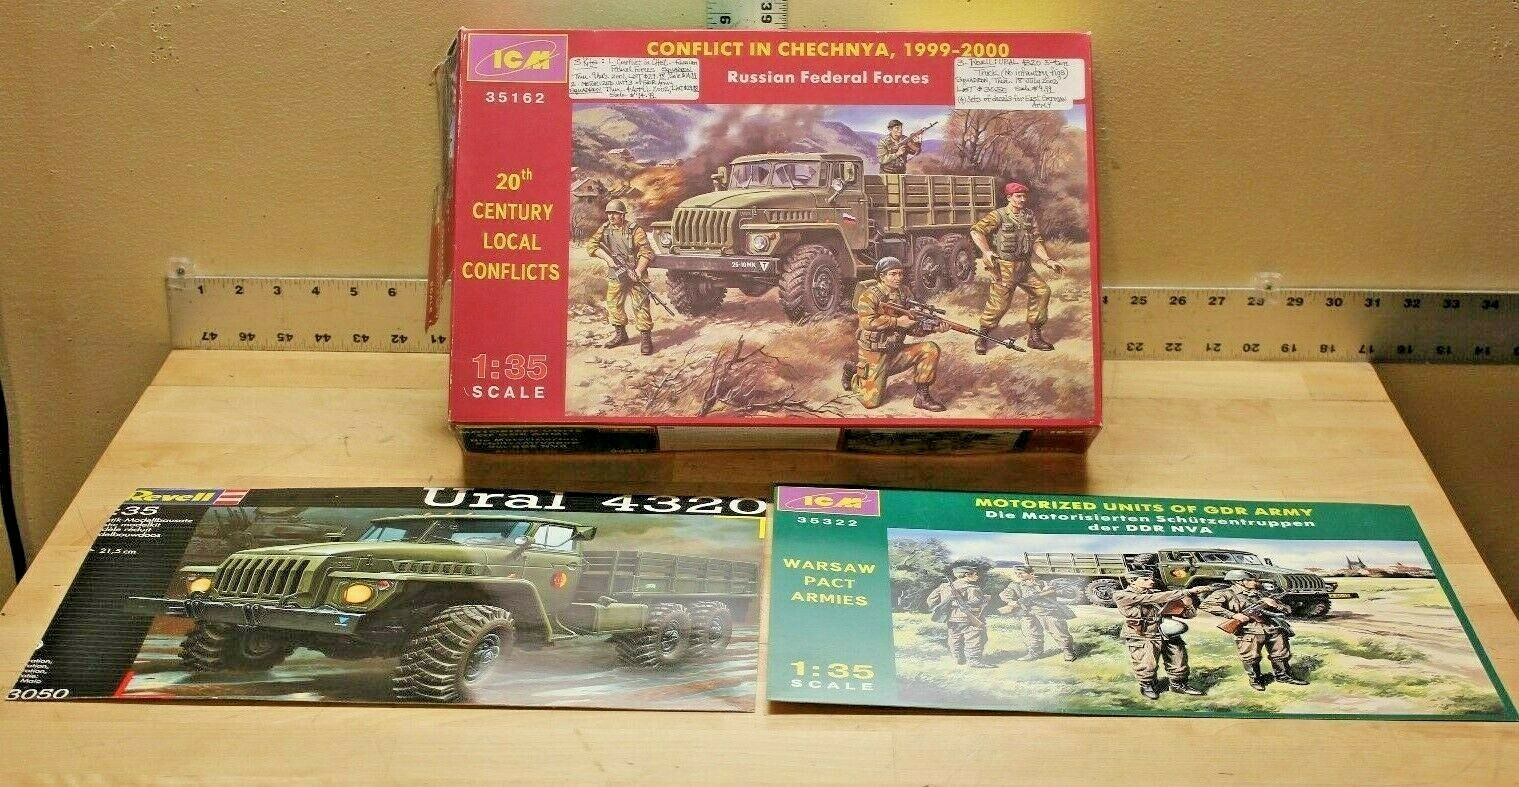 ICM 35322, 35162 and Revell 03050-0389 Model Kit Lot 3 Complete Kits in One Box